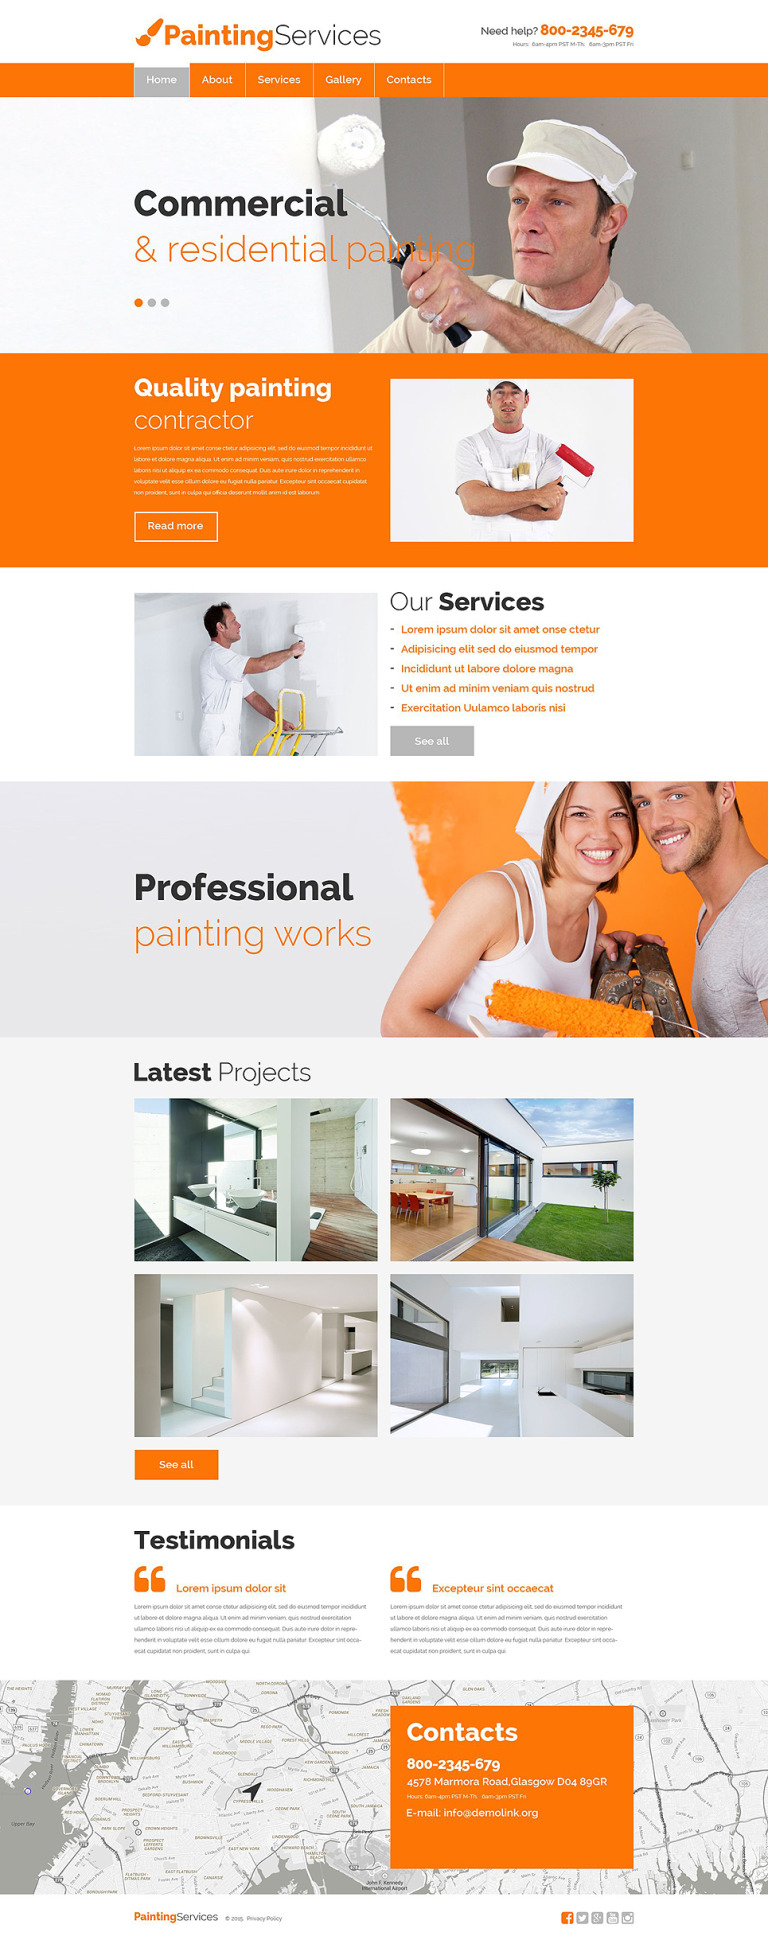 Painting Services Website Template New Screenshots BIG